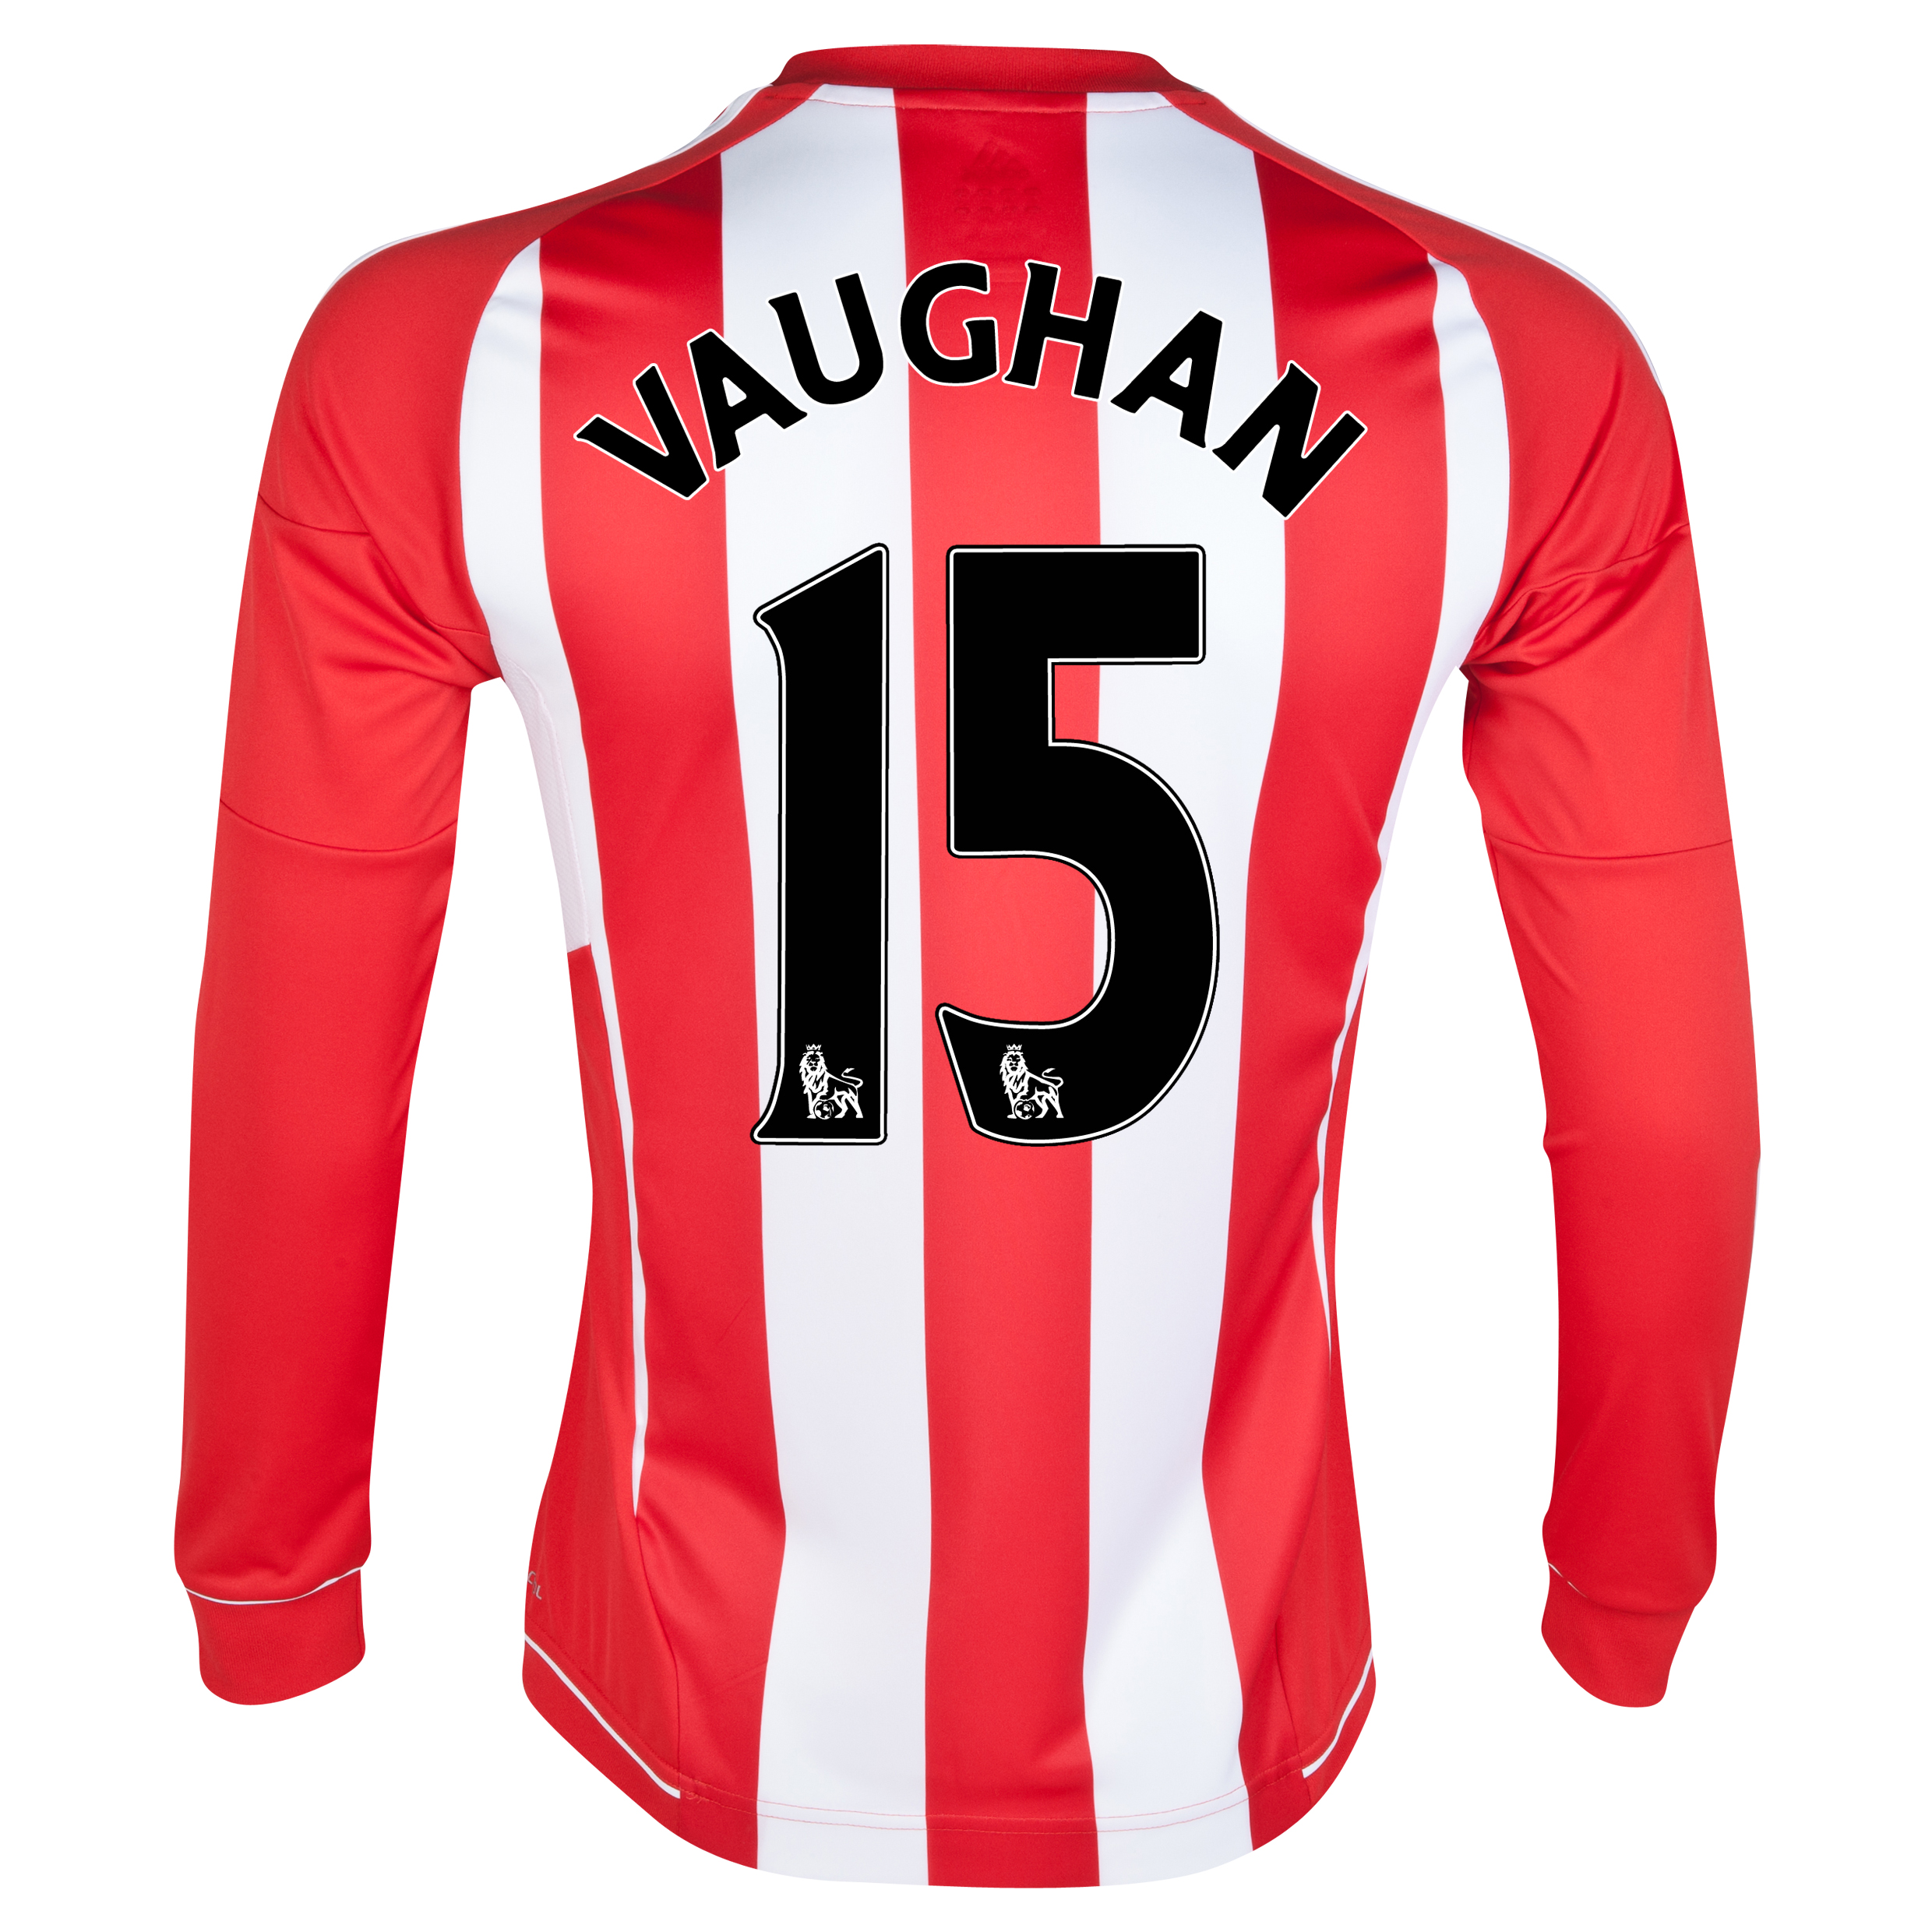 Sunderland Home Shirt 2012/13 - Long Sleeved with Vaughan 15 printing